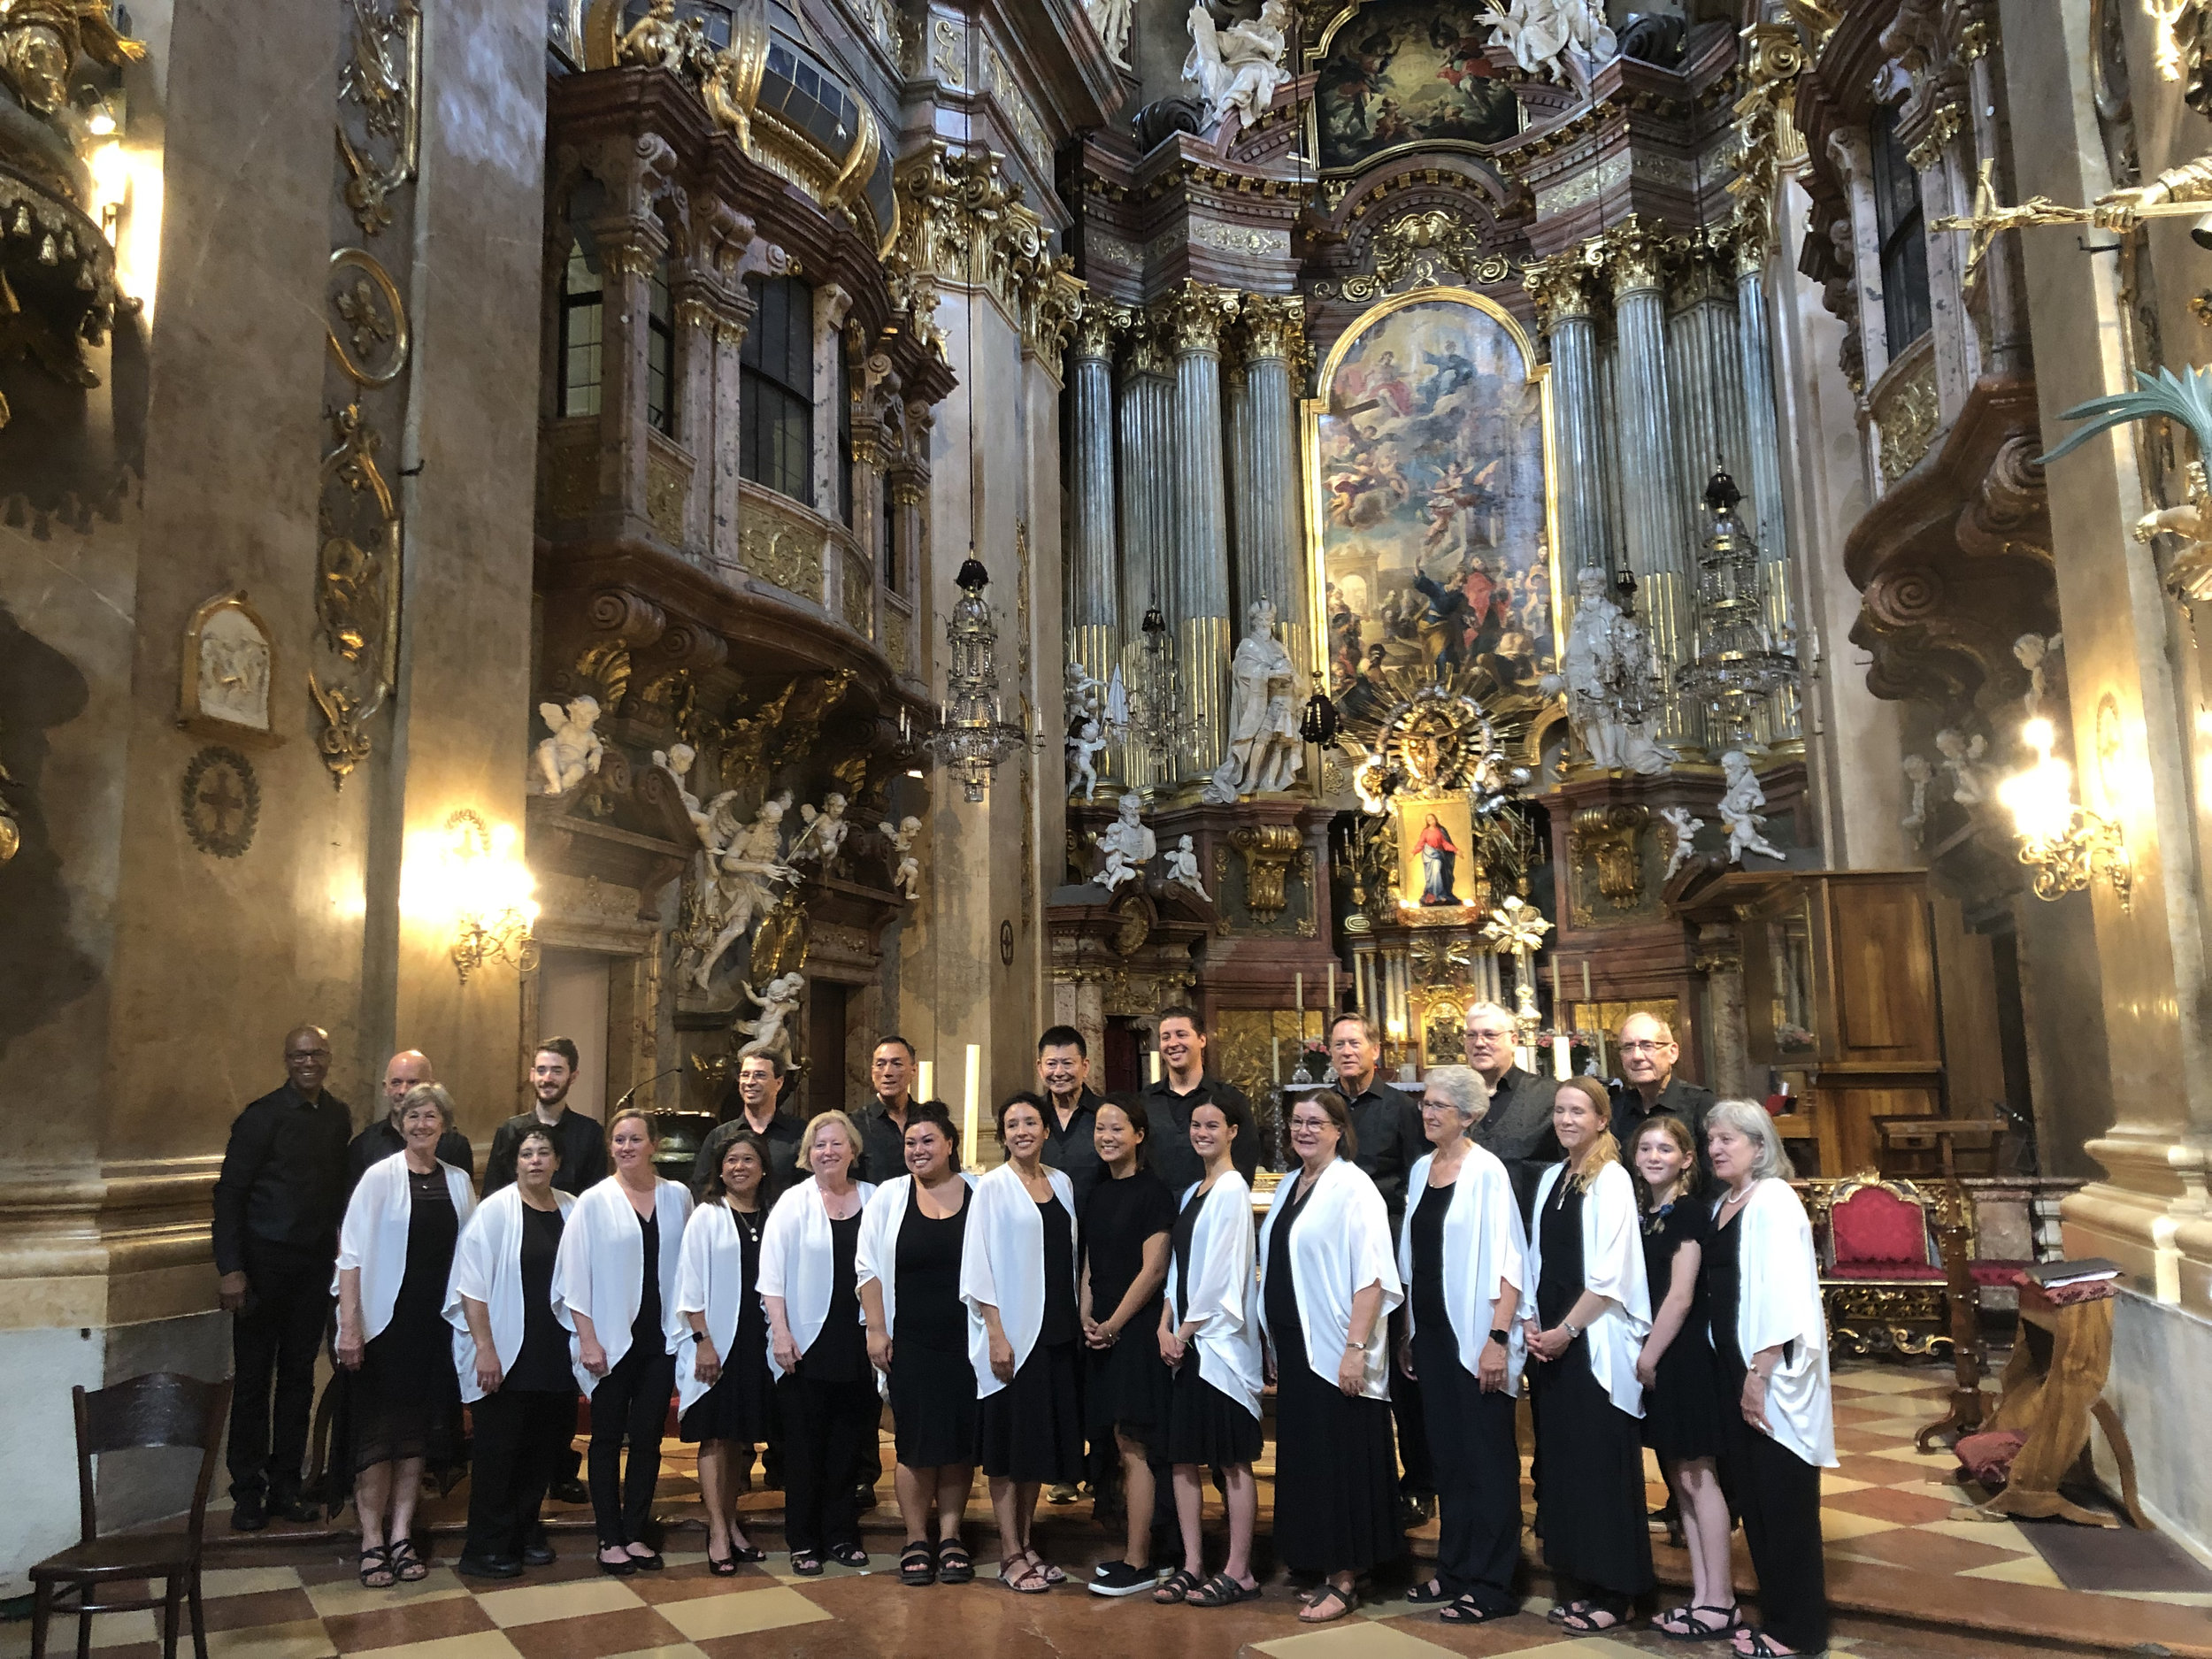 St Peter churhc Vienna 2019.jpg